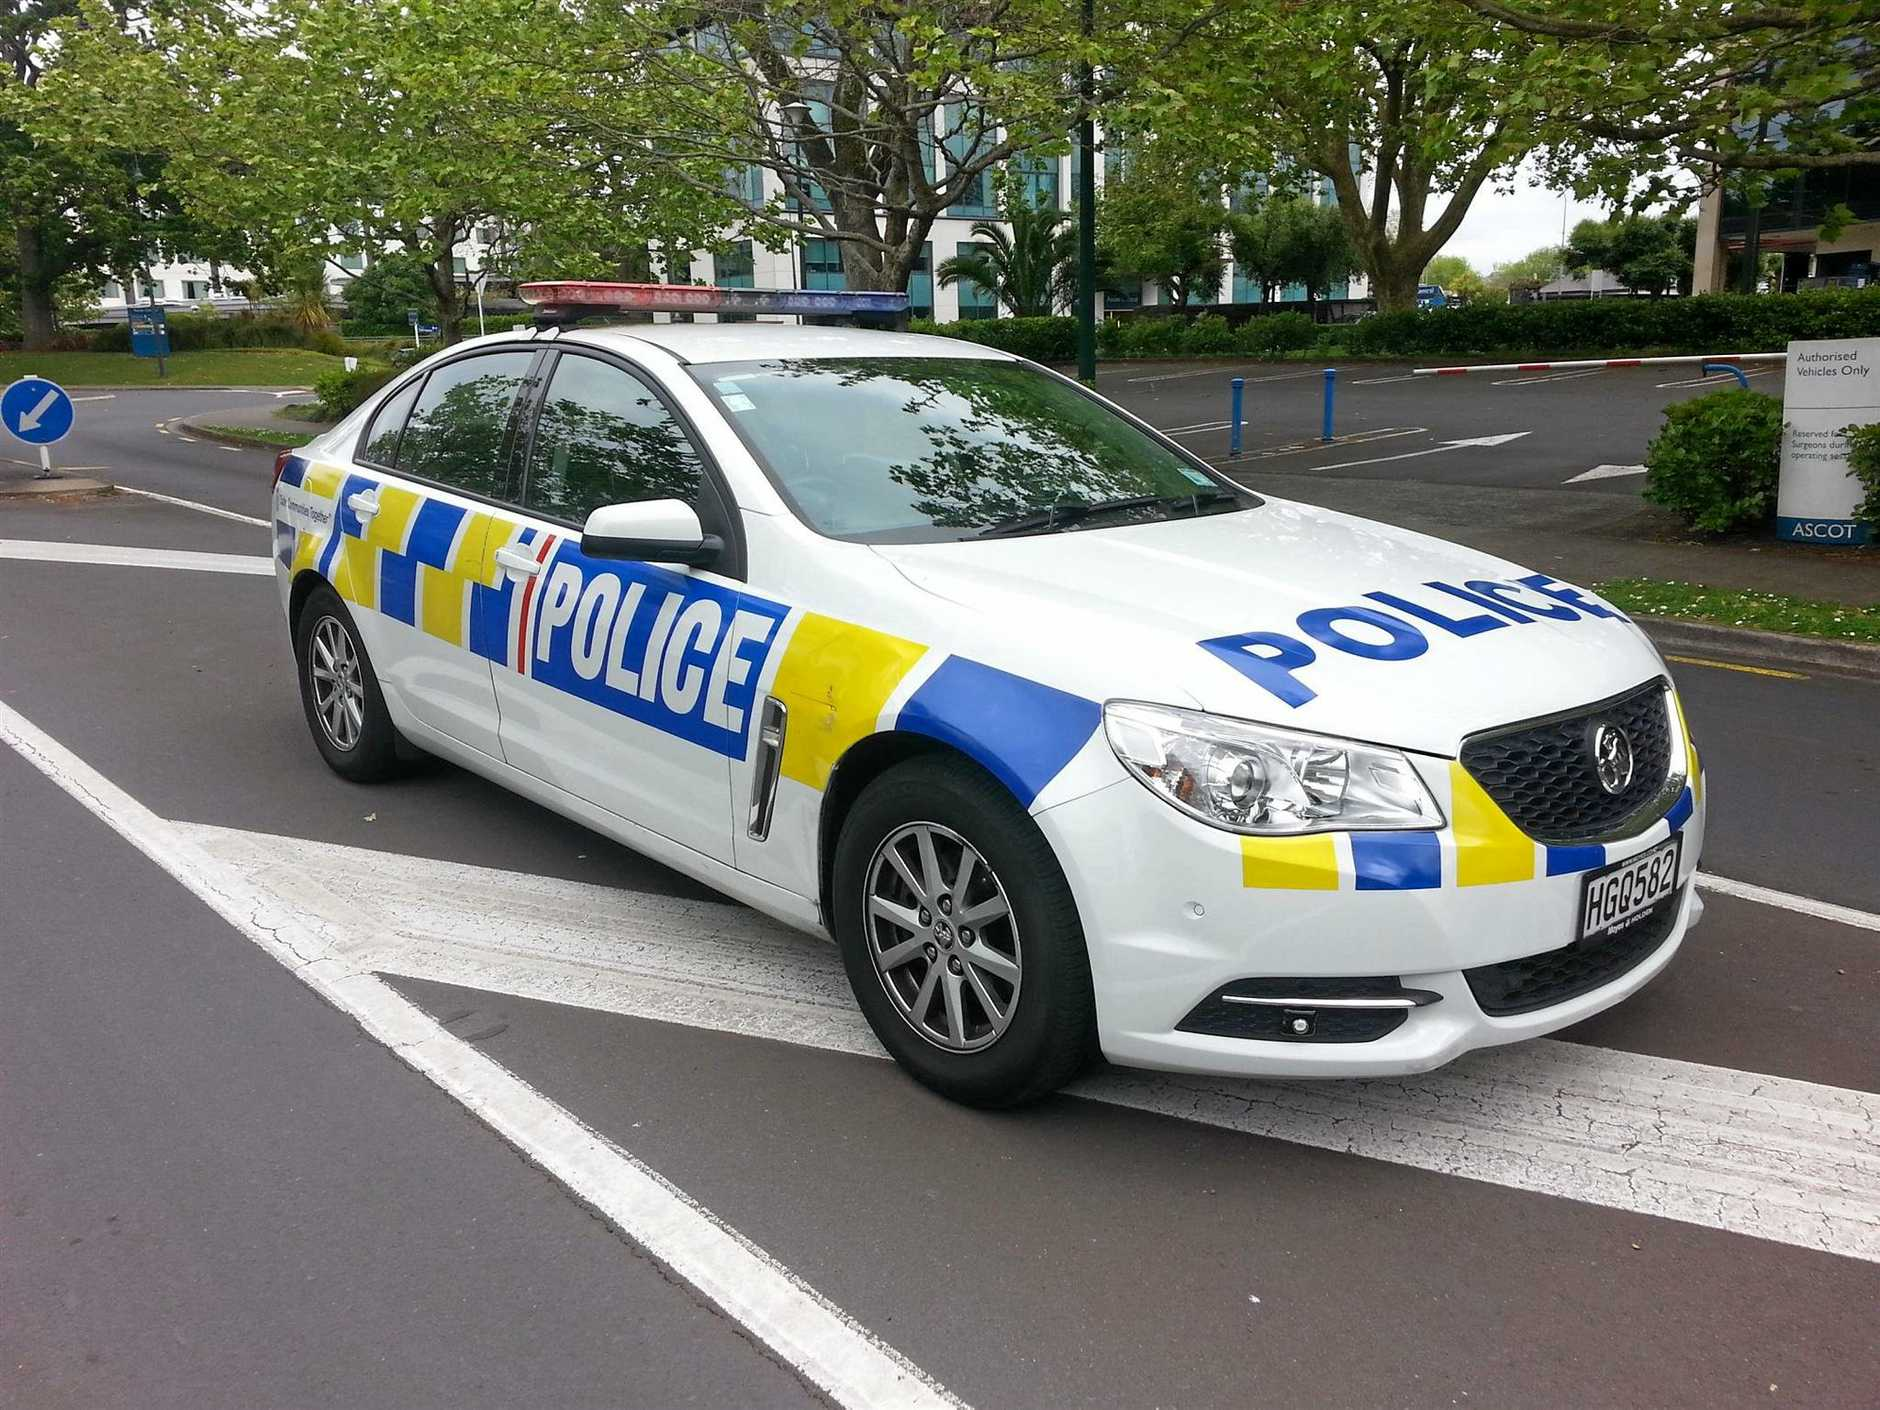 Most complaints about New Zealand police relate to service delivery.